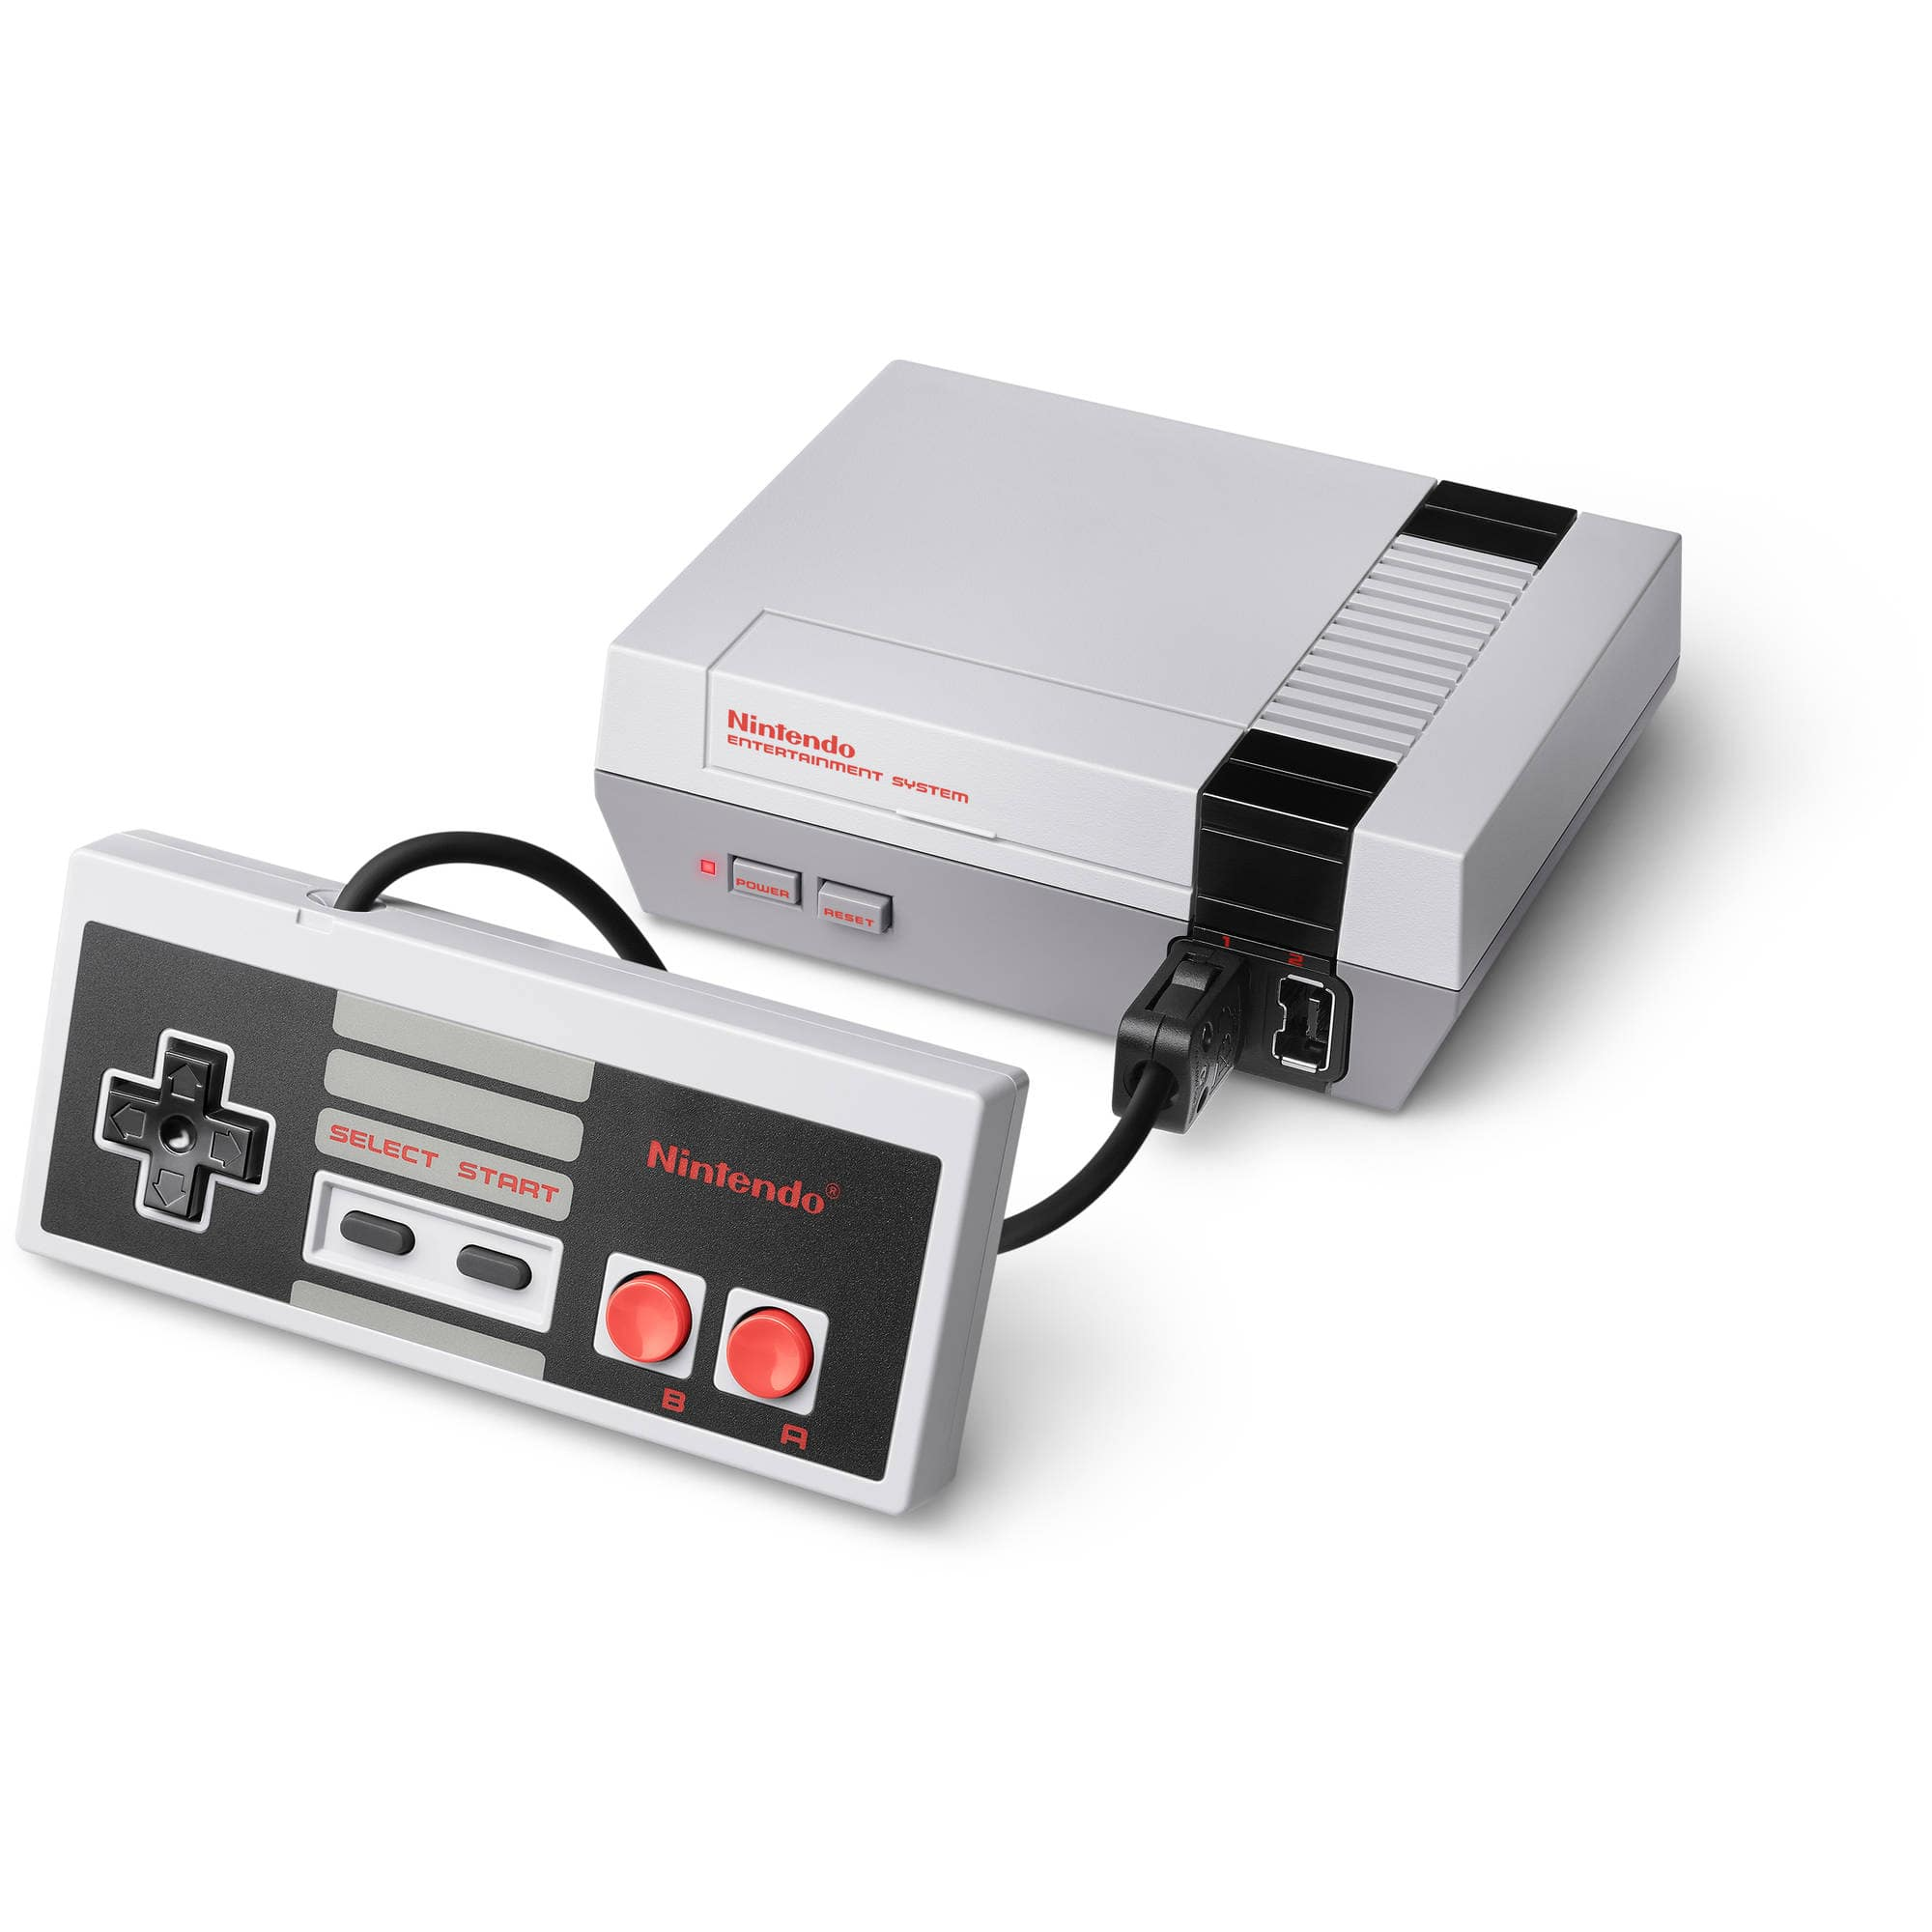 Available 7/20 - Nintendo - Entertainment System: NES Classic Edition @ Best Buy $59.99